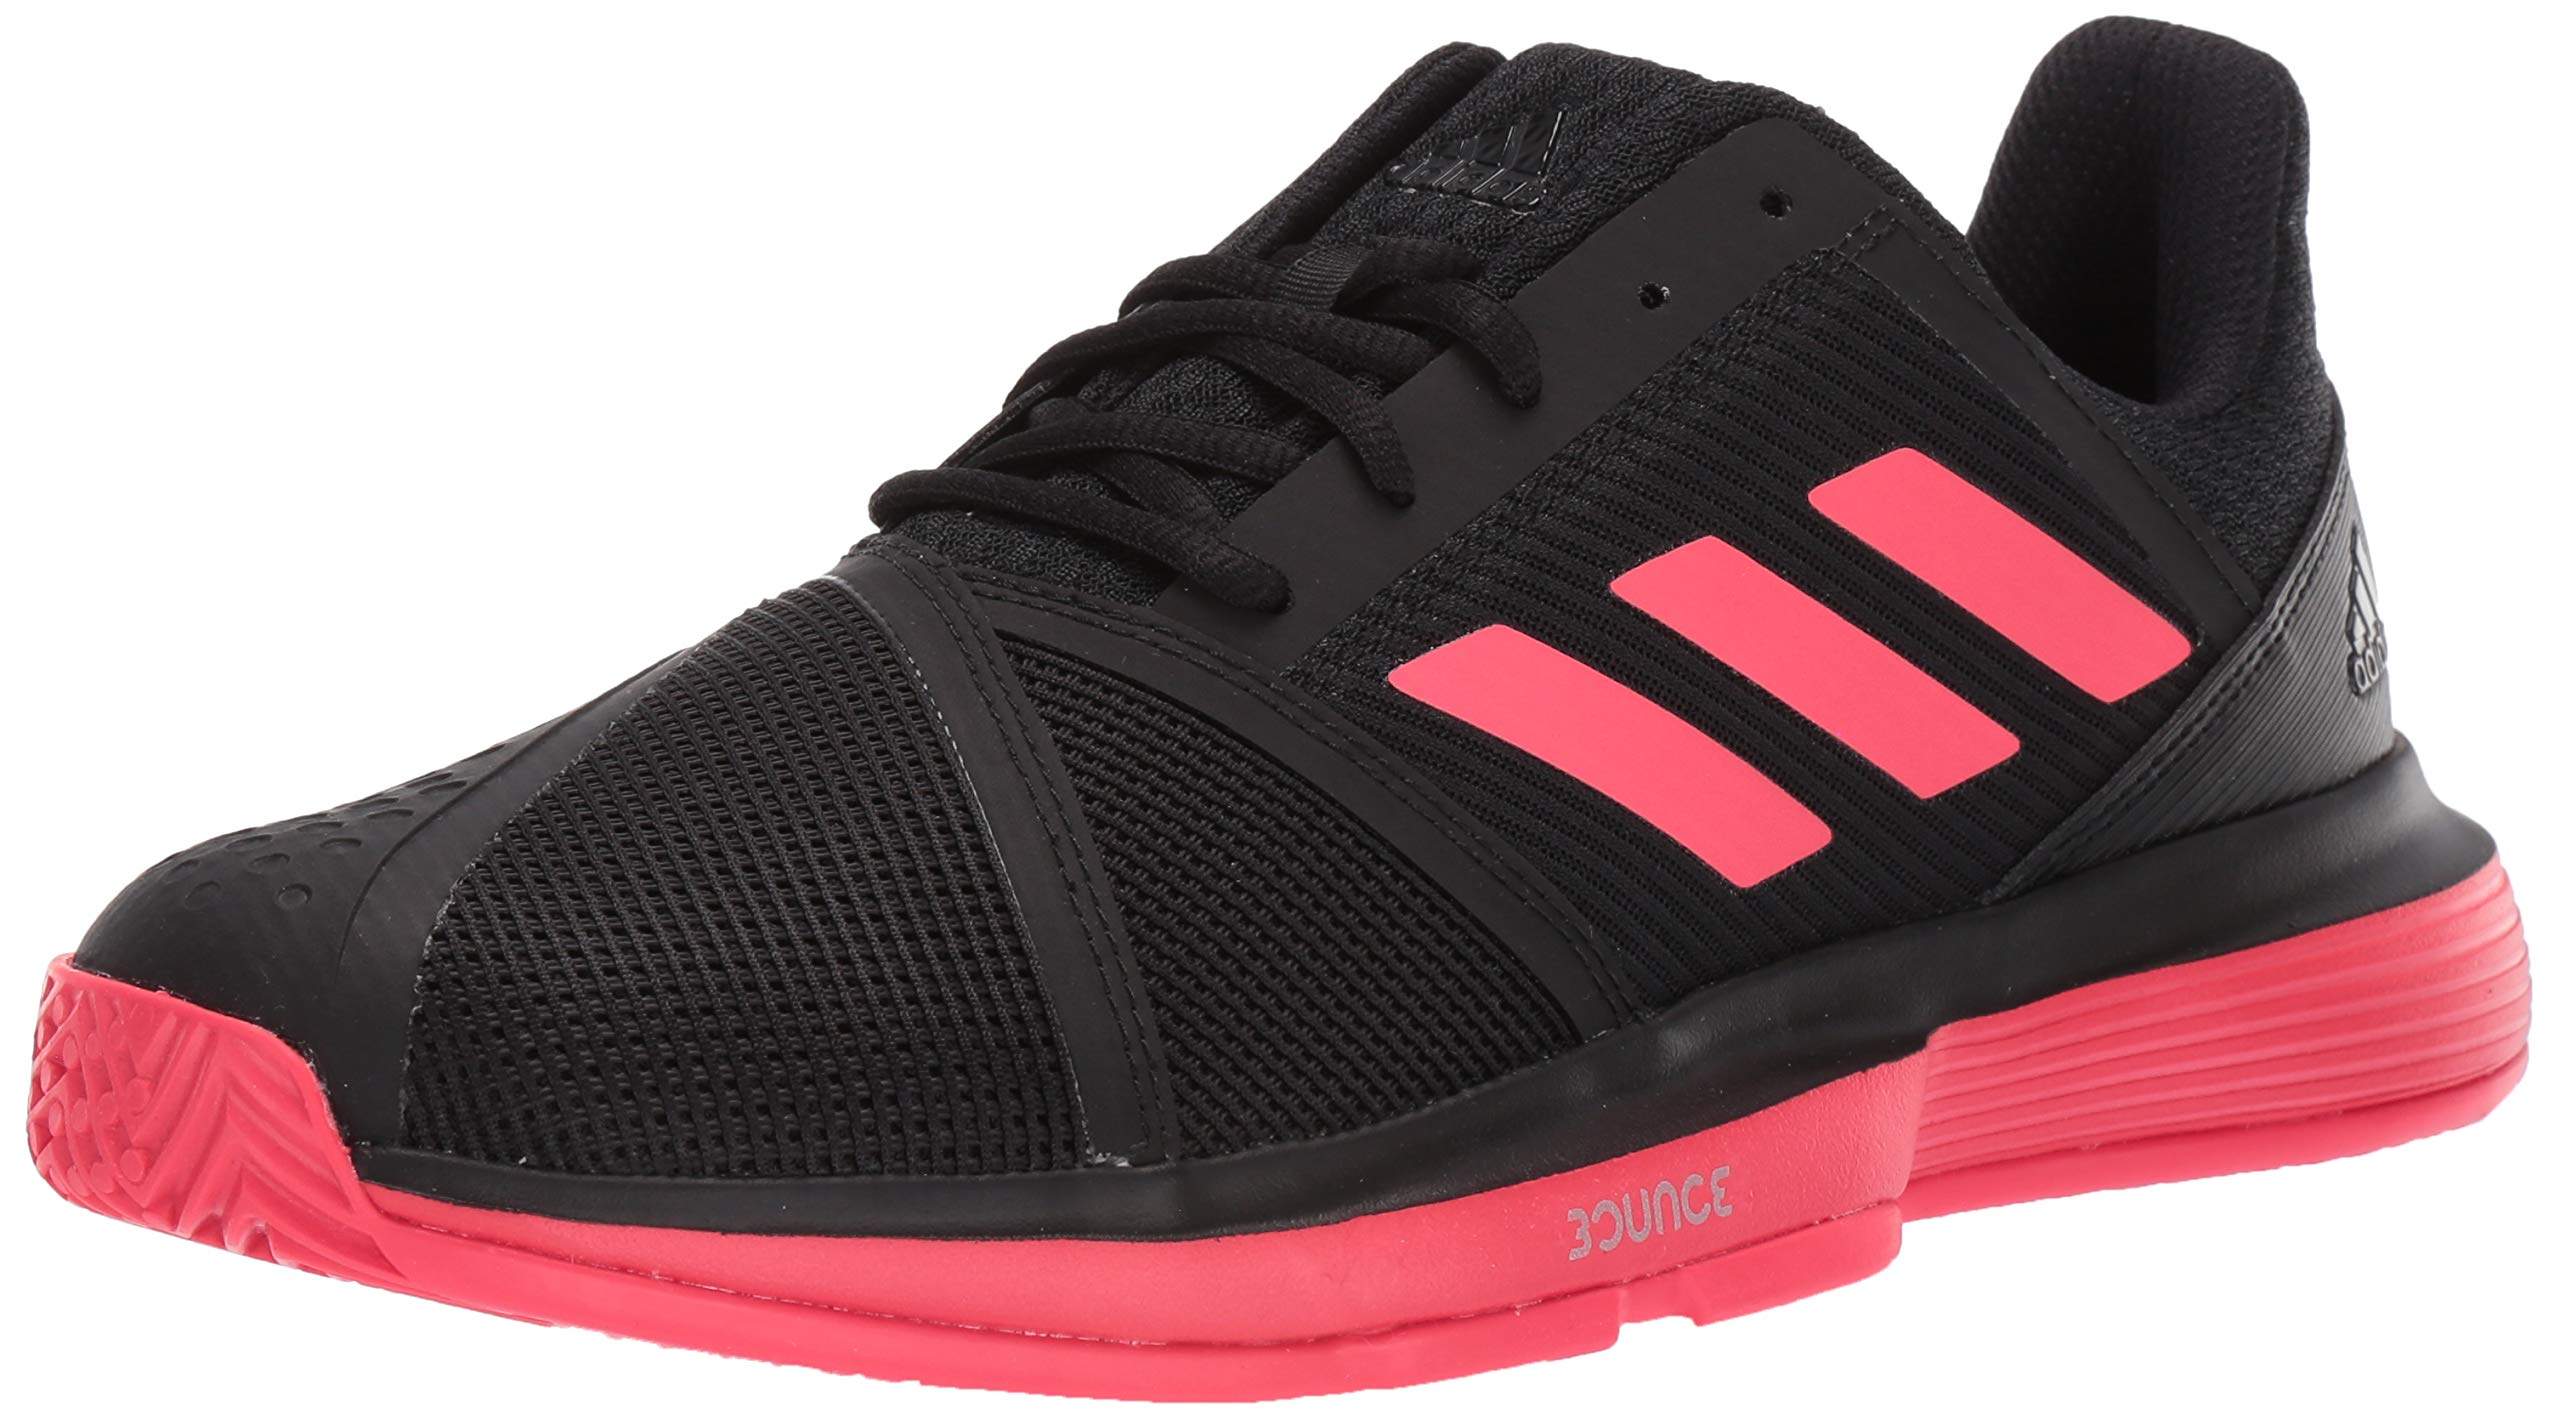 adidas Men's Courtjam Bounce, Black/Shock red/White, 6.5 M US